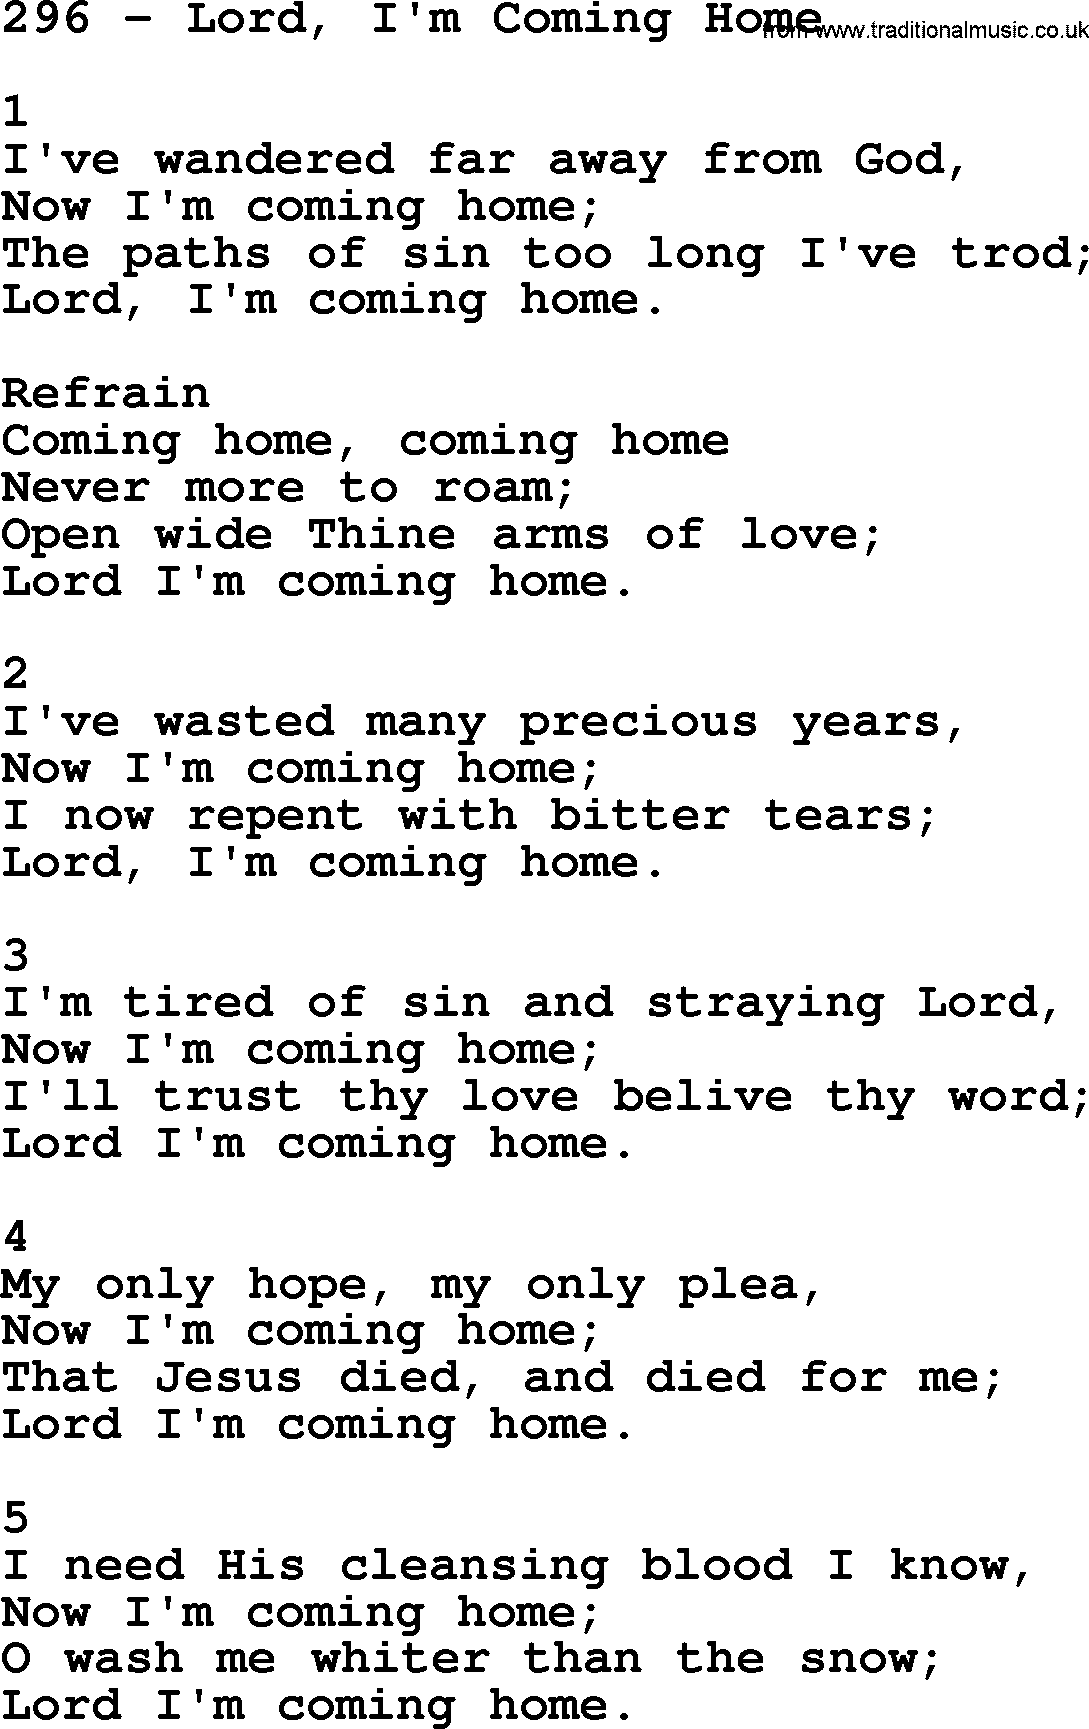 Adventist Hymnal, Song: 296-Lord, I'm Coming Home, with